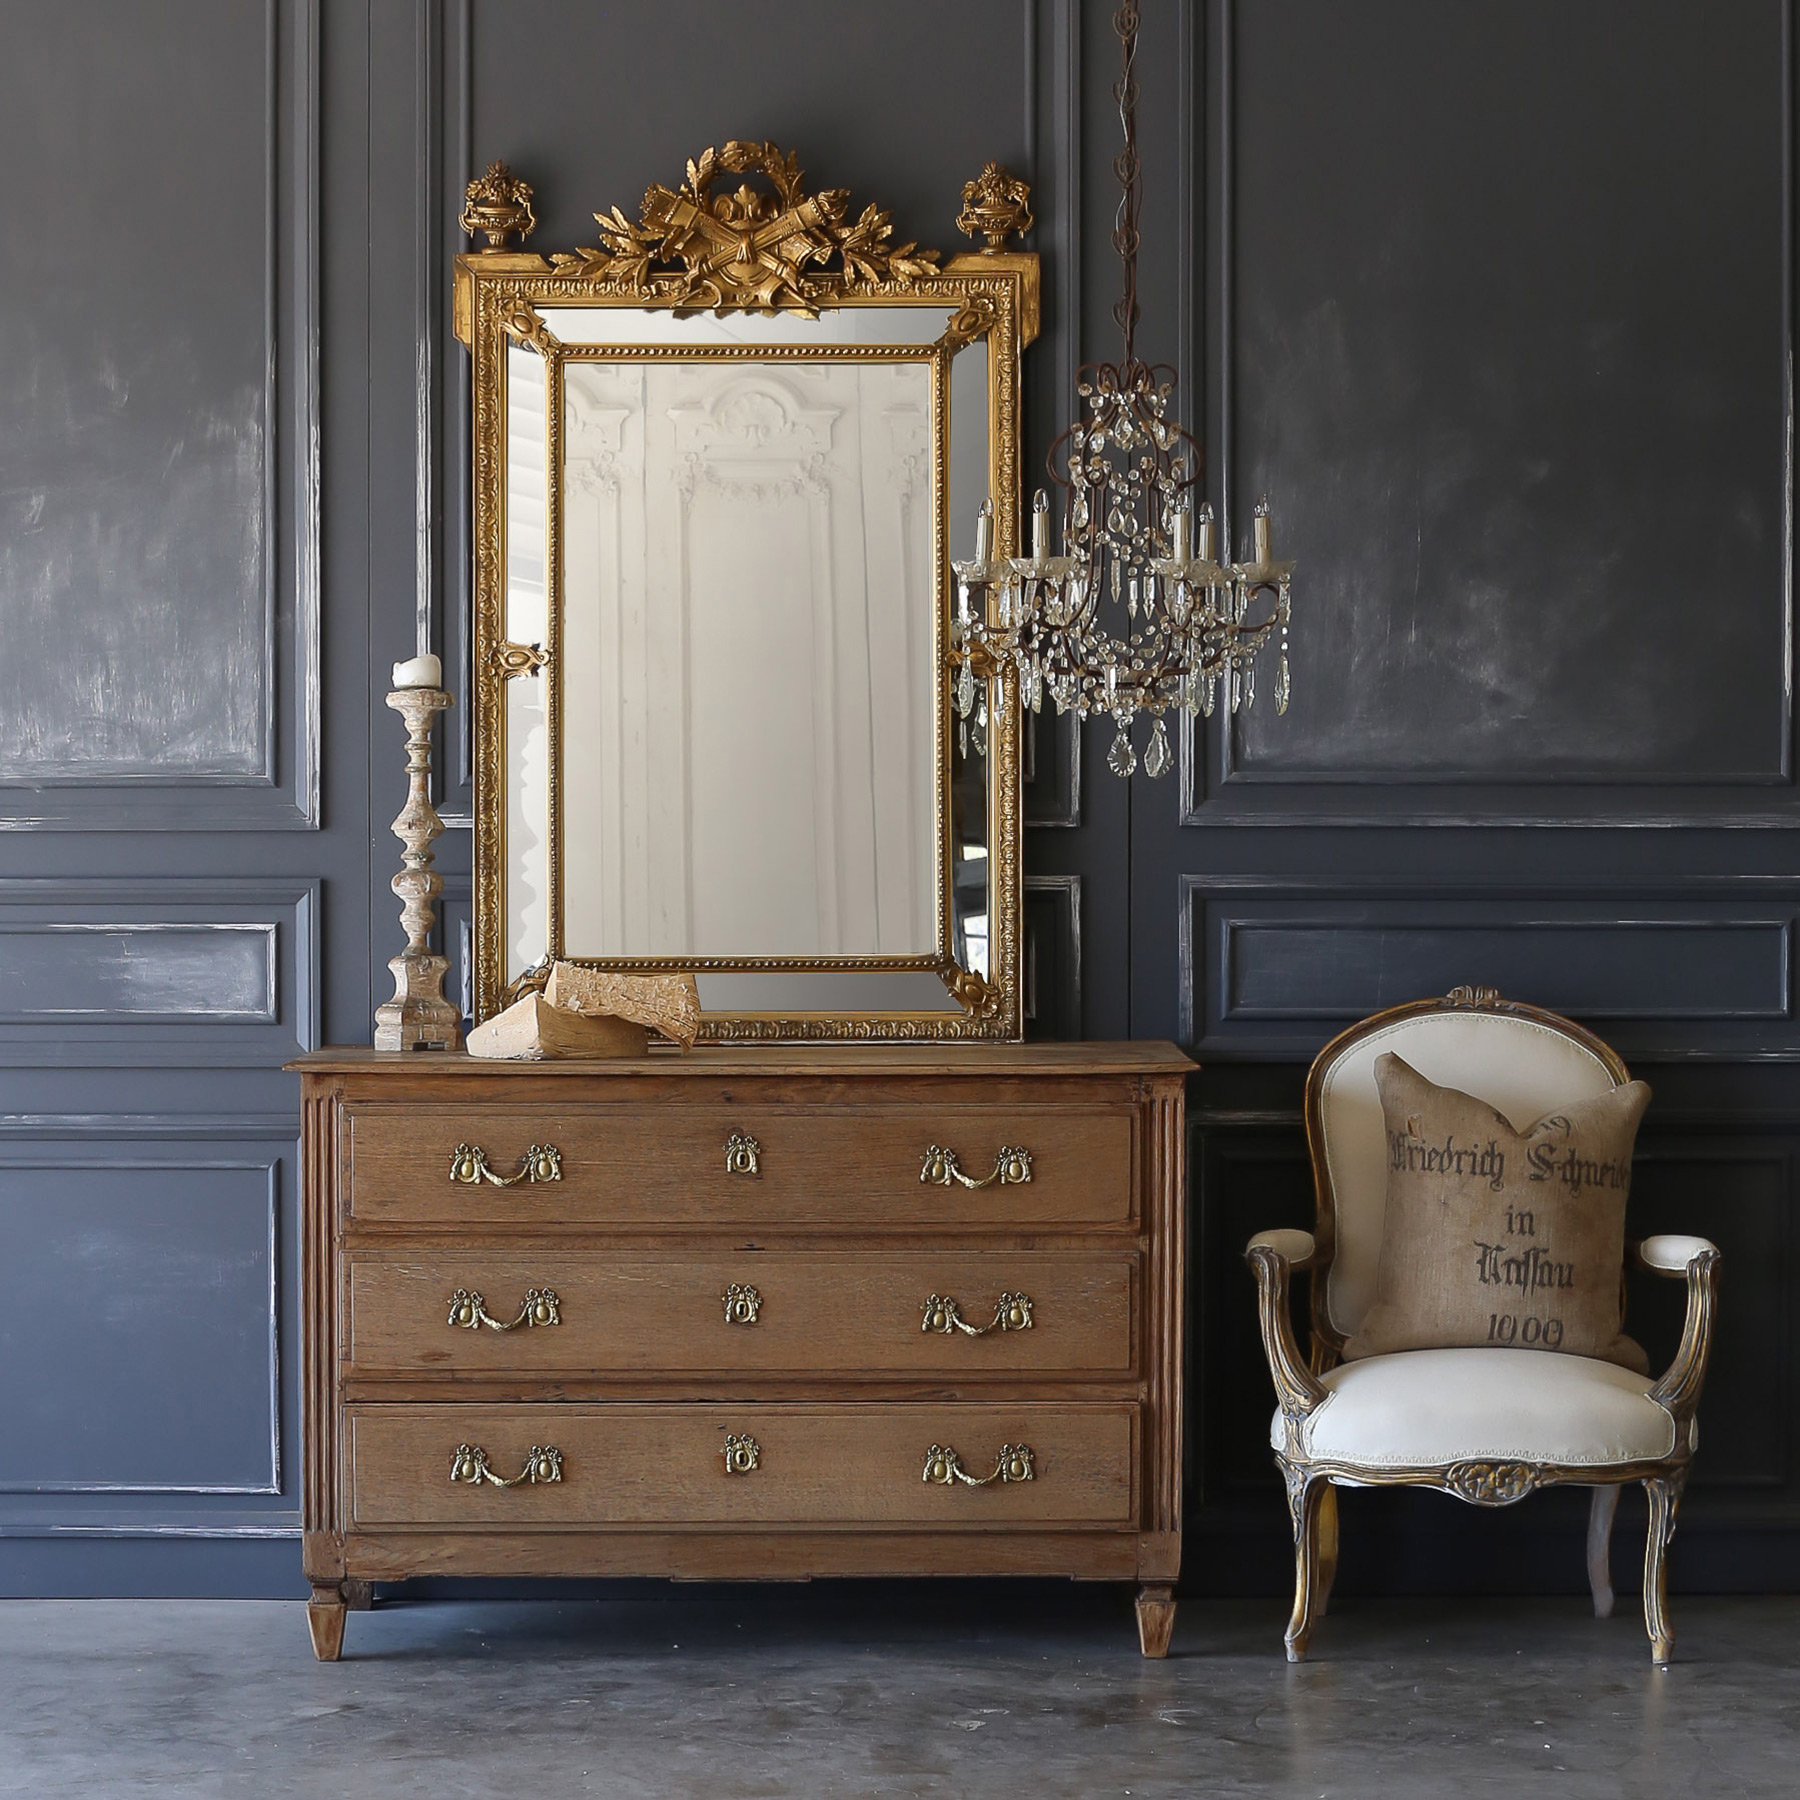 Eloquence® Antique Ornate Mirror: 1900